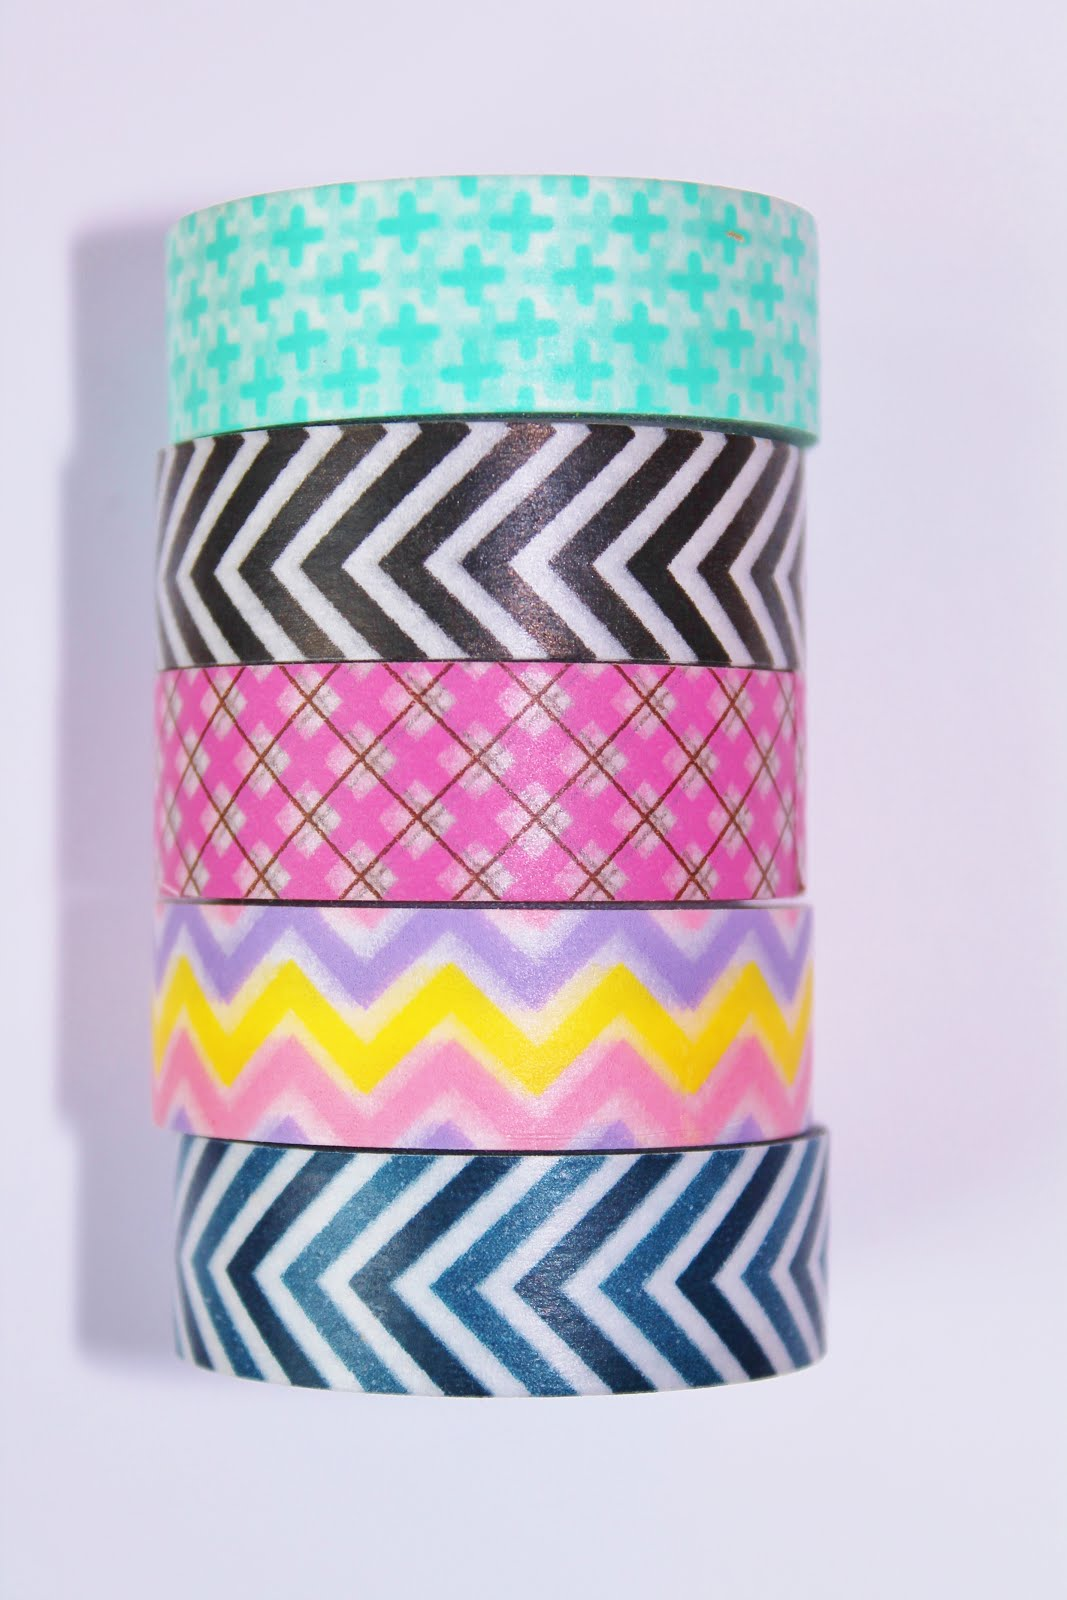 Queres comprar WASHI TAPES? Hay mas de 30 modelos diferentes!